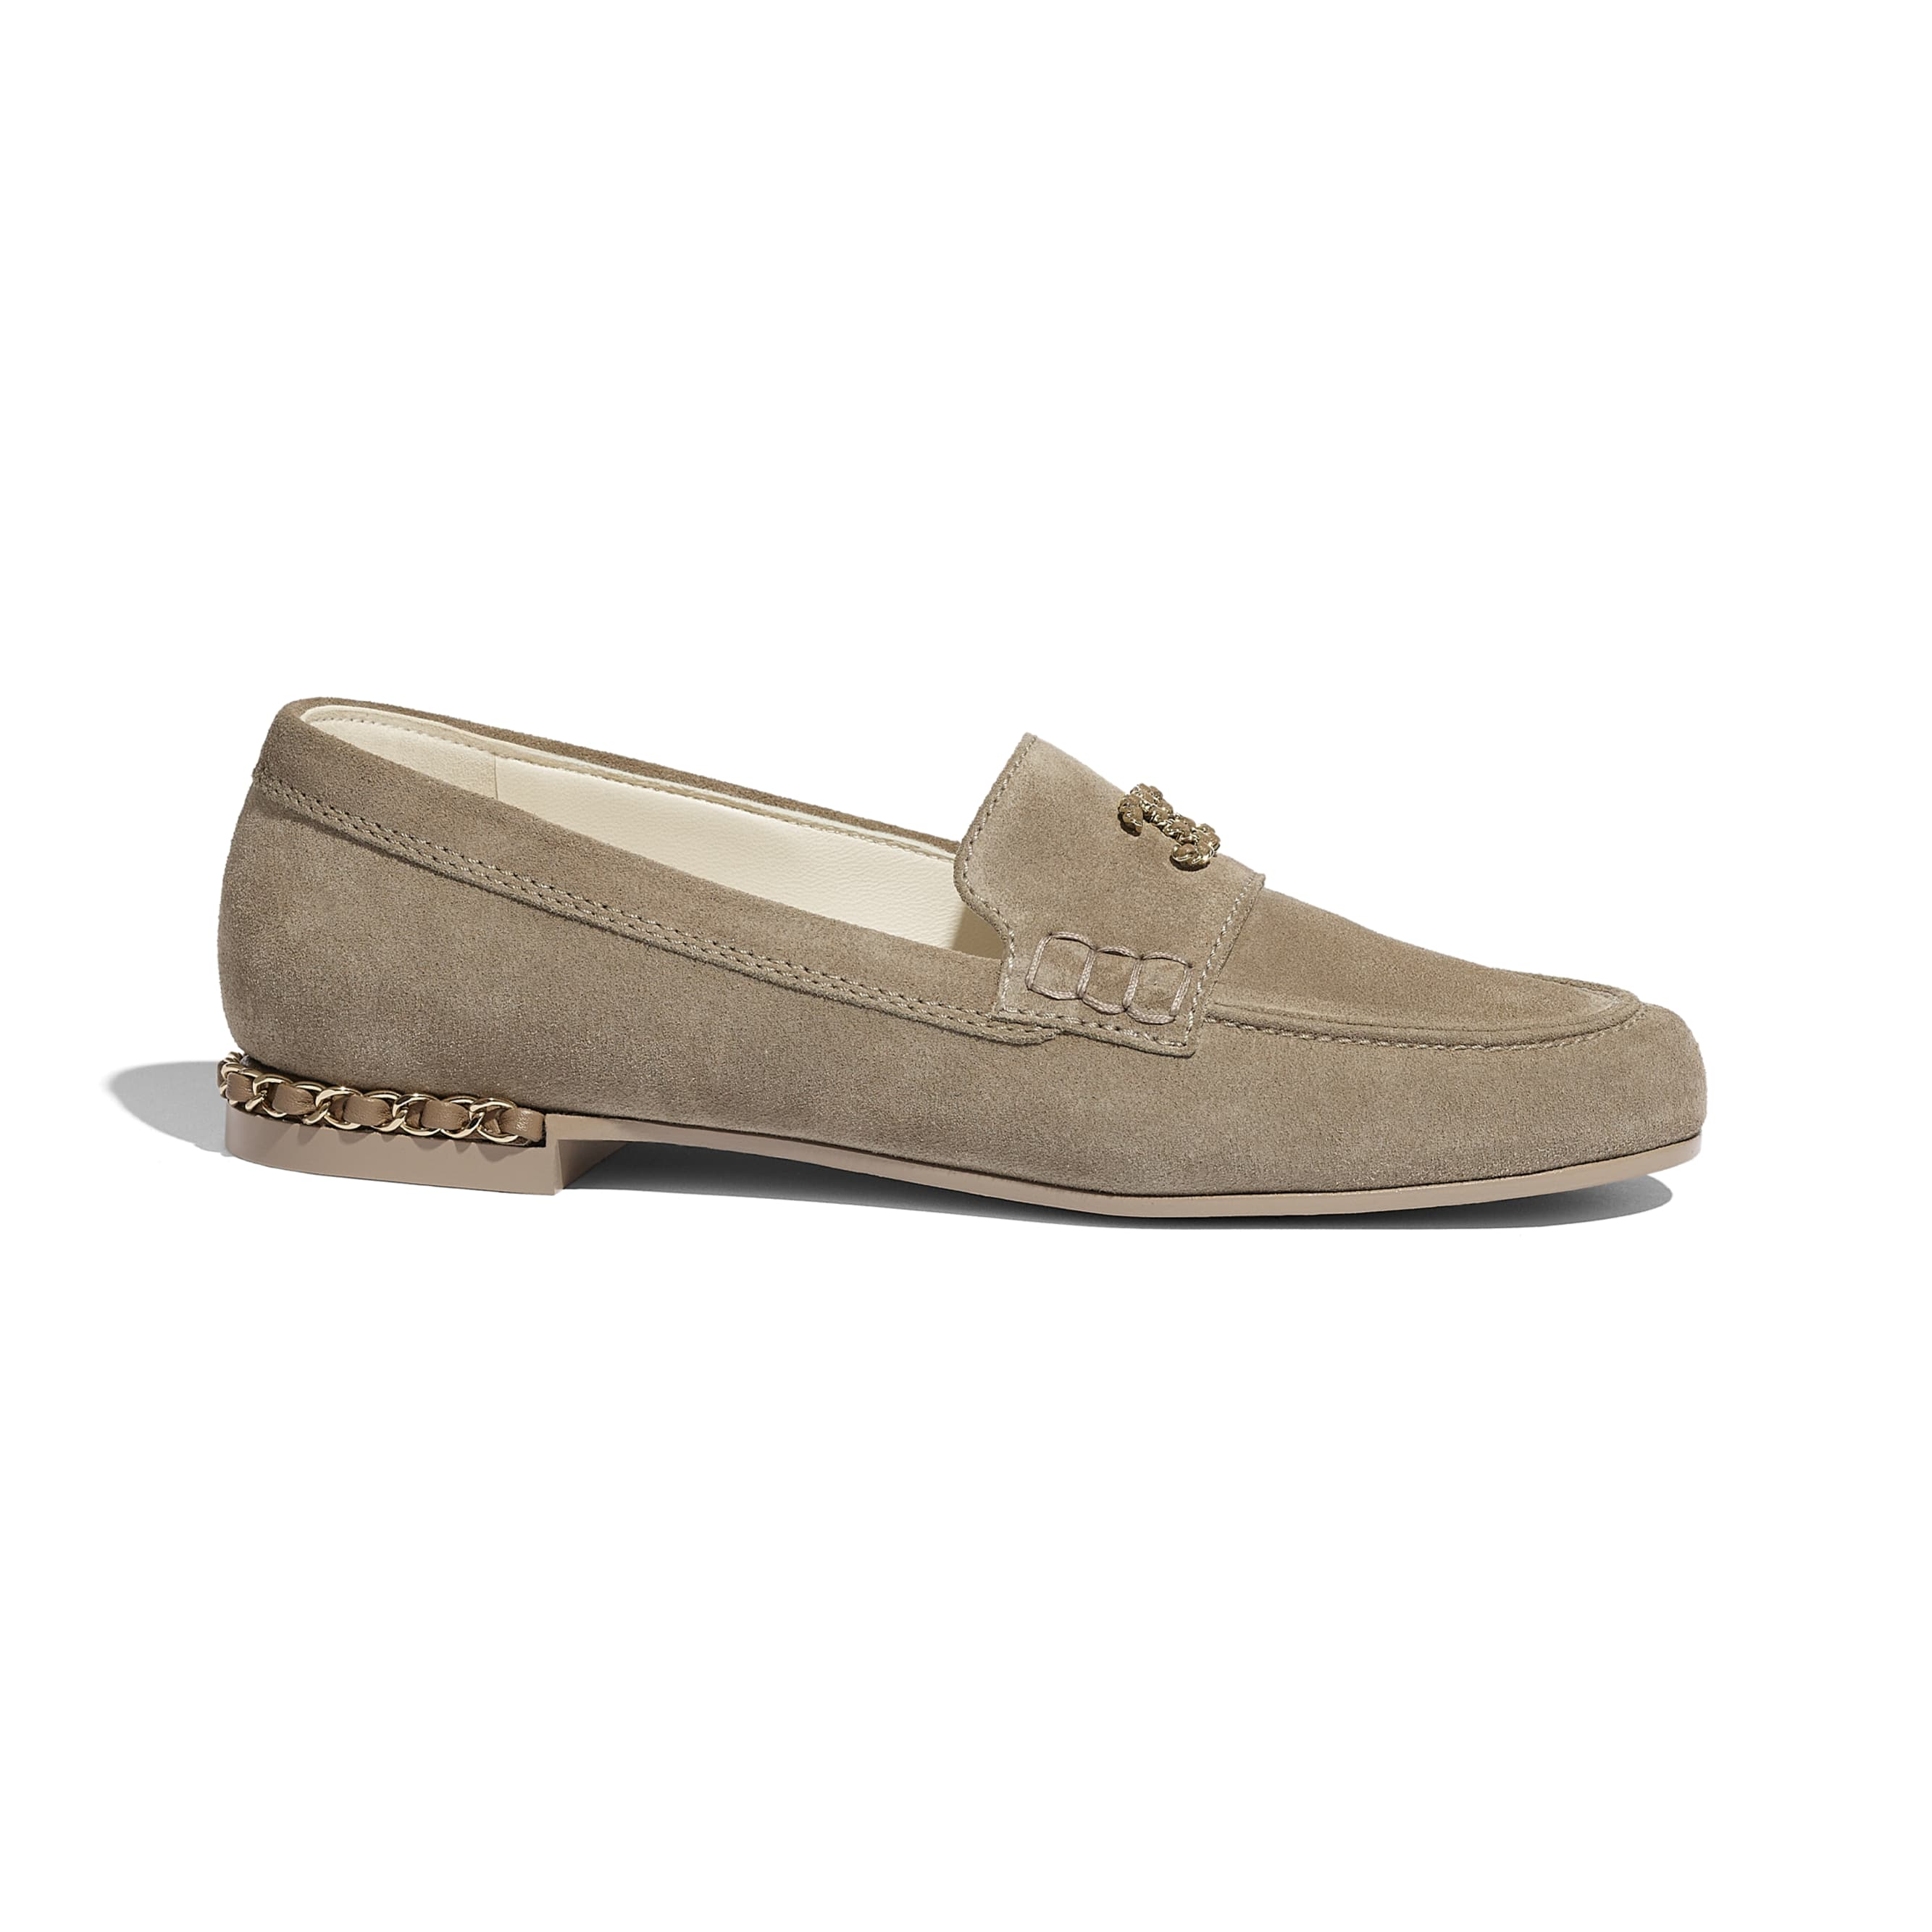 Loafers - Dark Beige - Suede Calfskin - CHANEL - Default view - see standard sized version